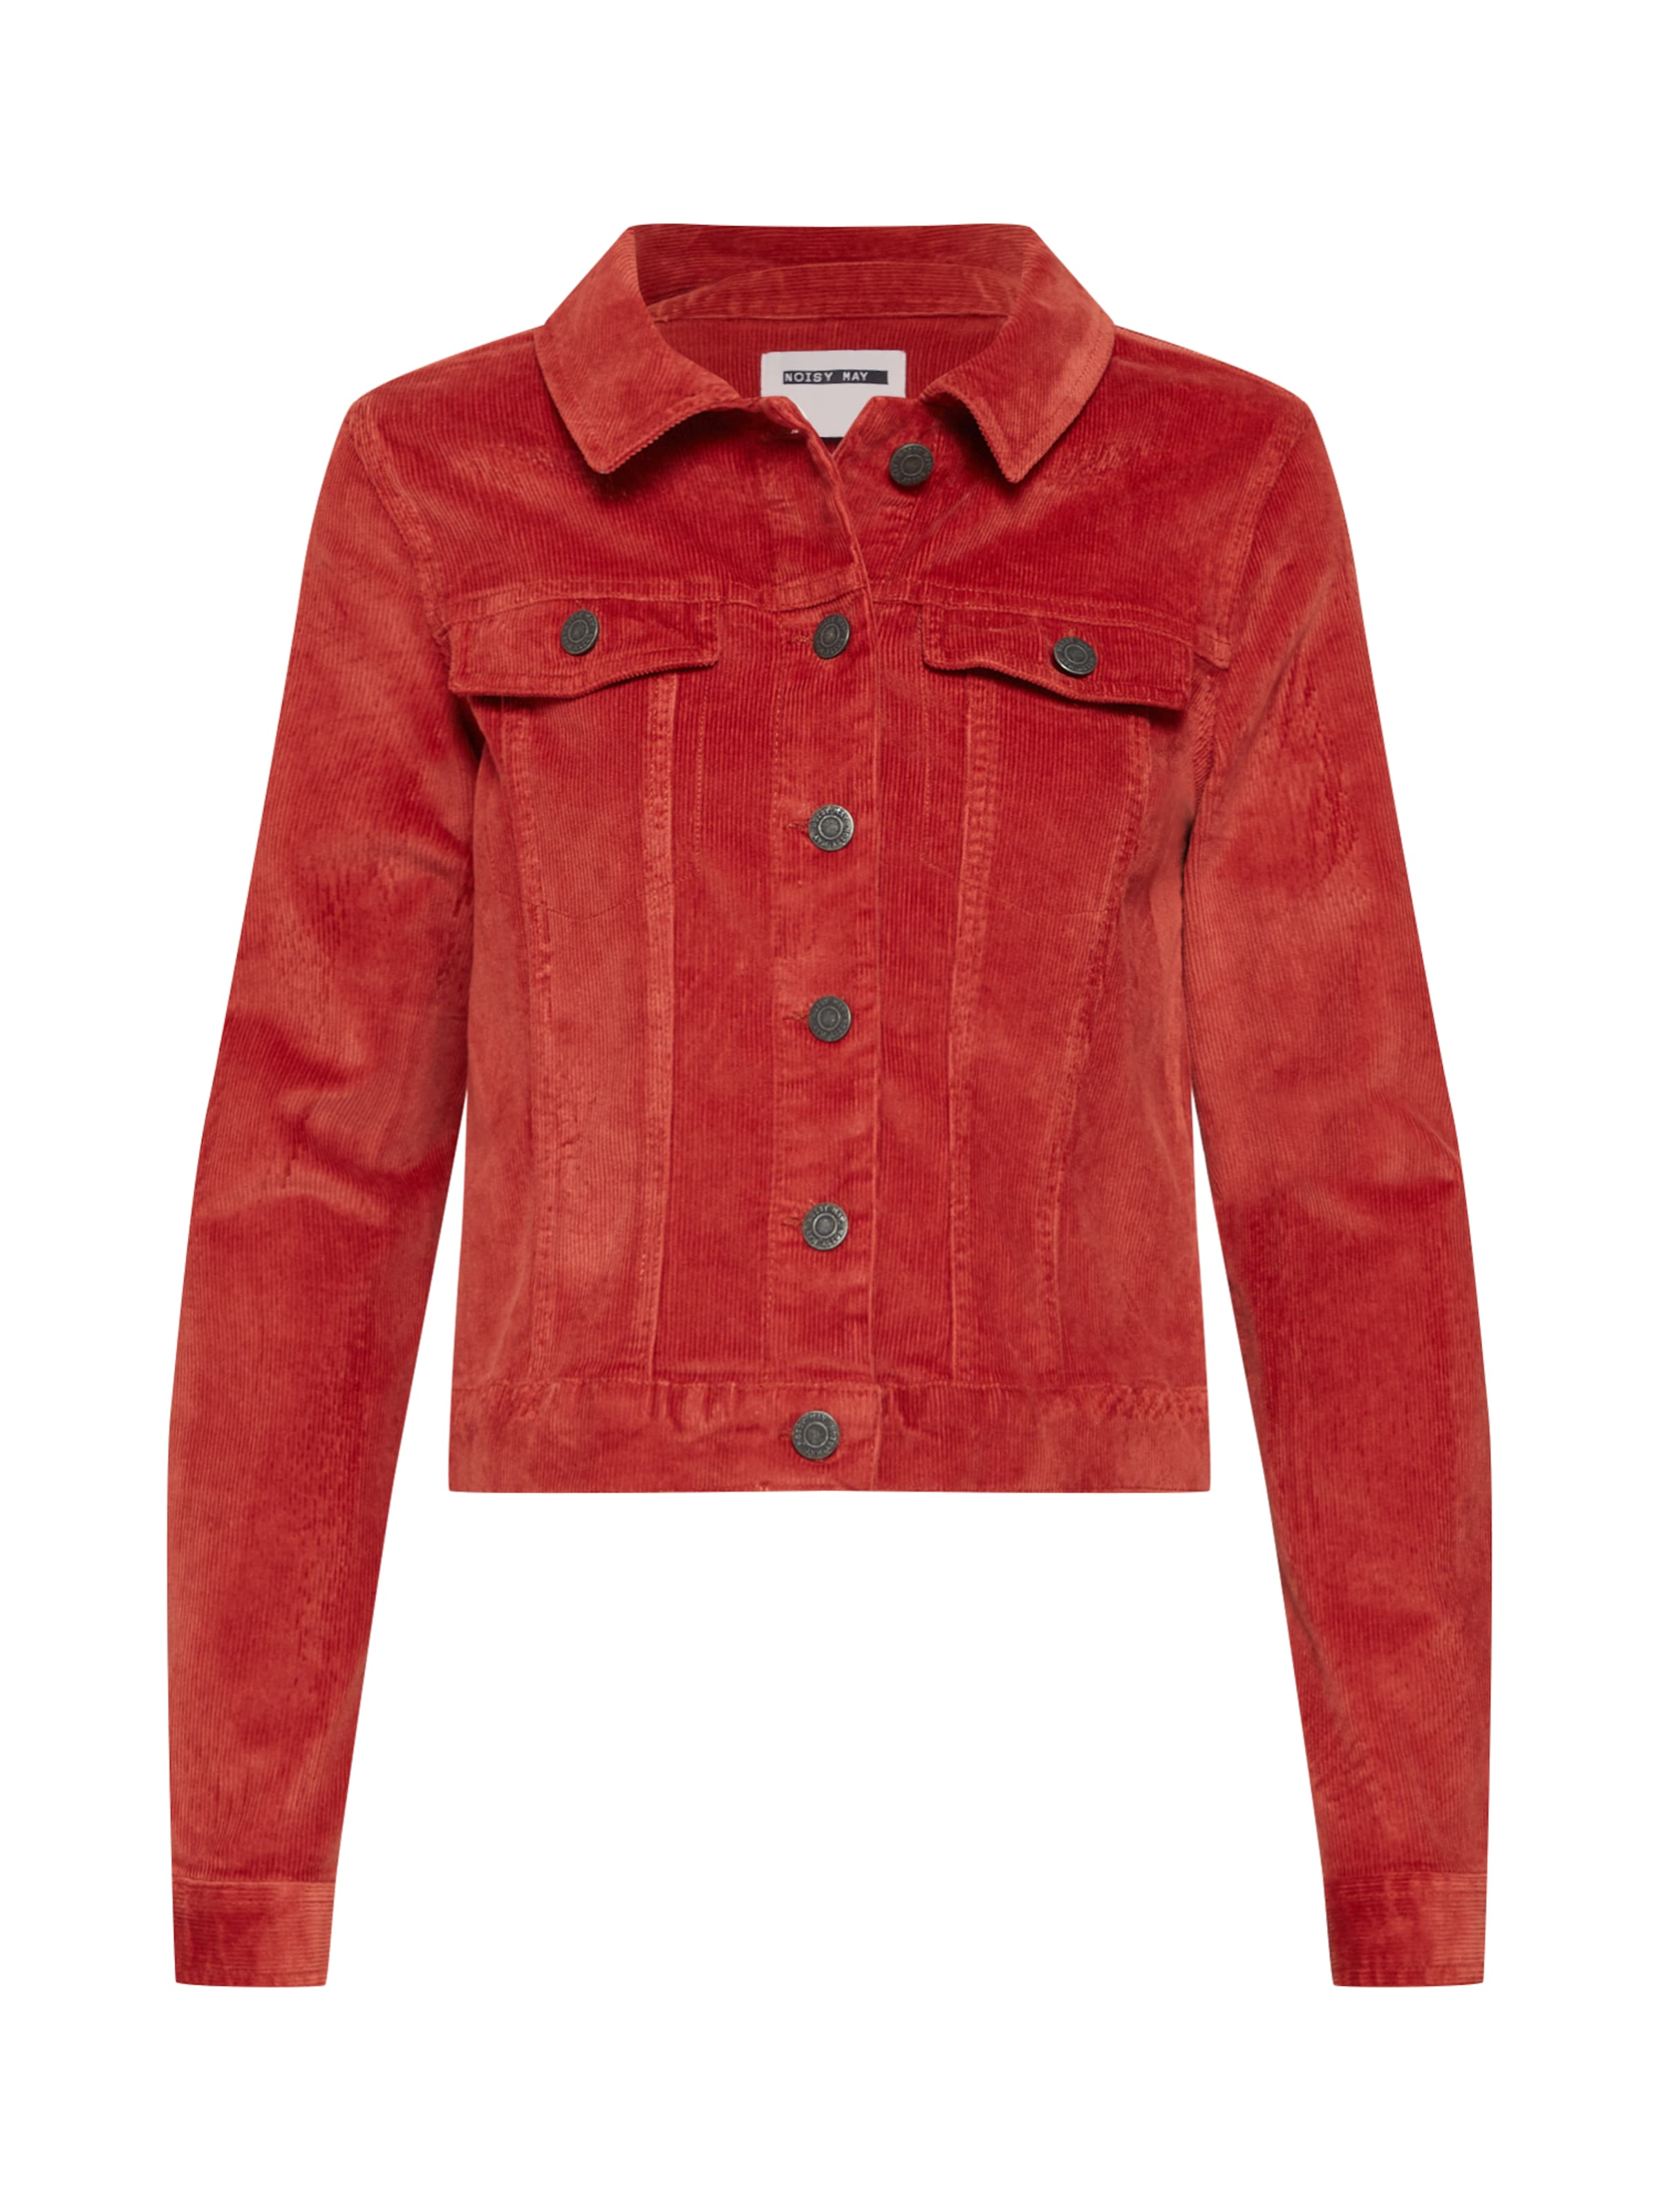 May Noisy Ls Rostrot Noos' Jacke 'nmada In Corduroy H2WDI9E